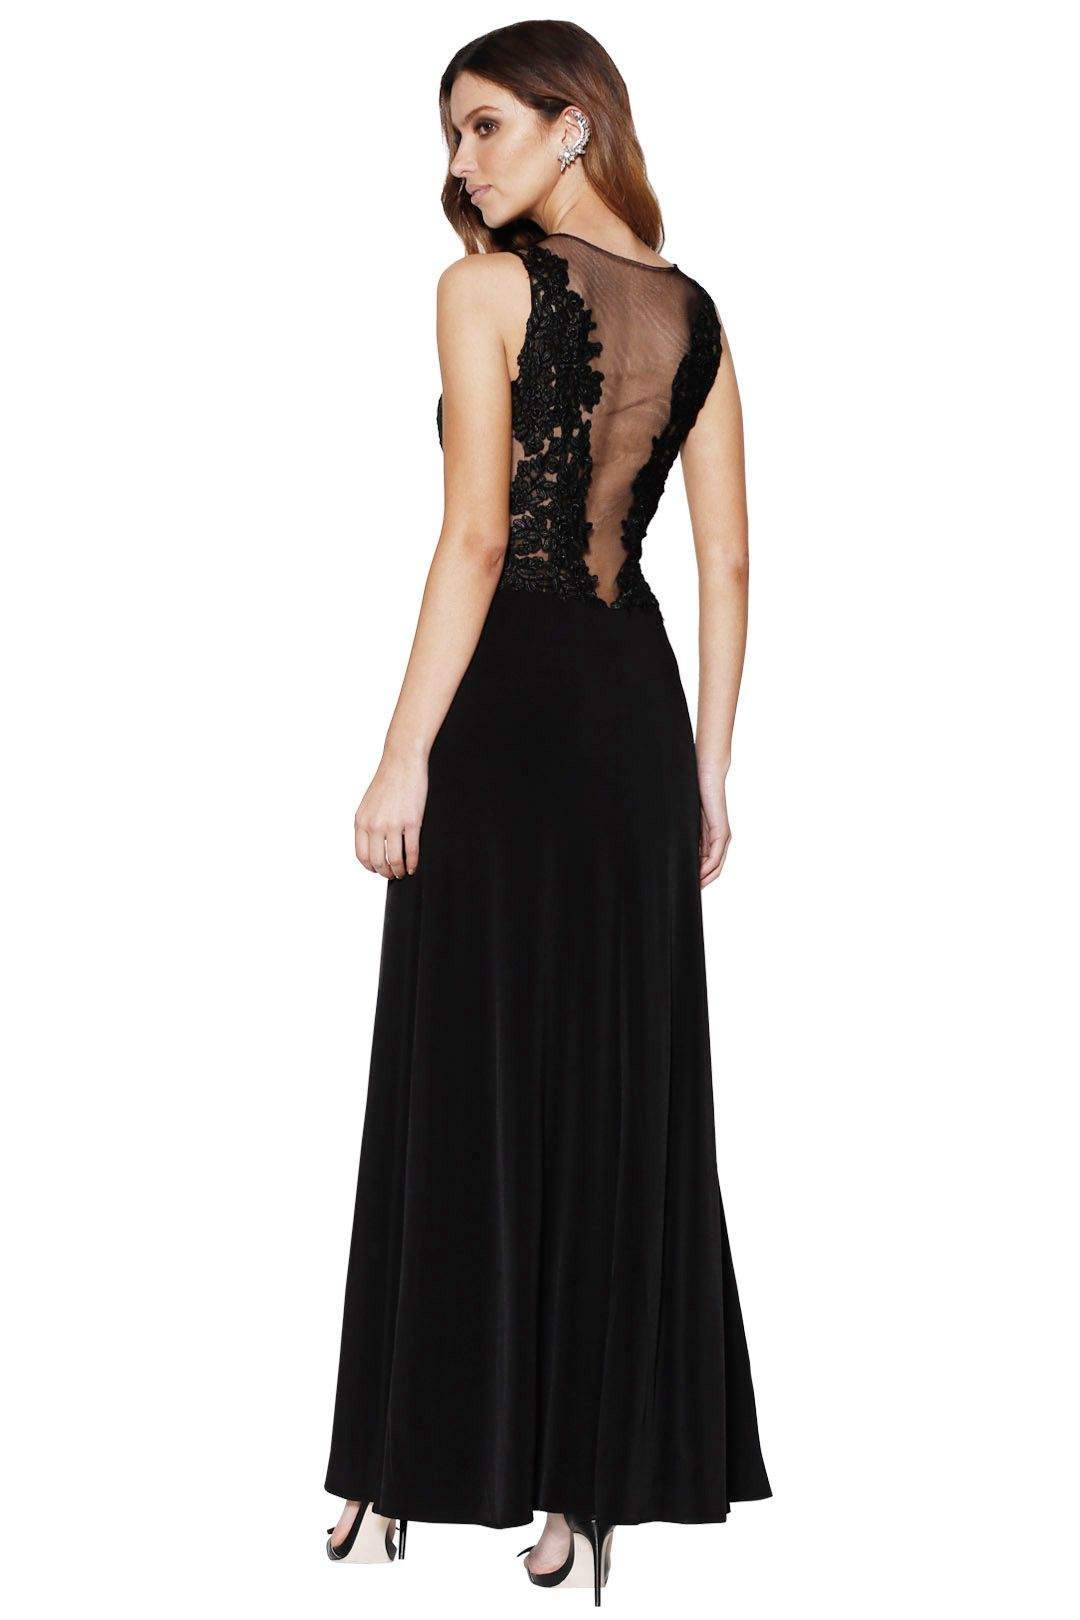 Grace and Hart - Starlet Gown Black - Back